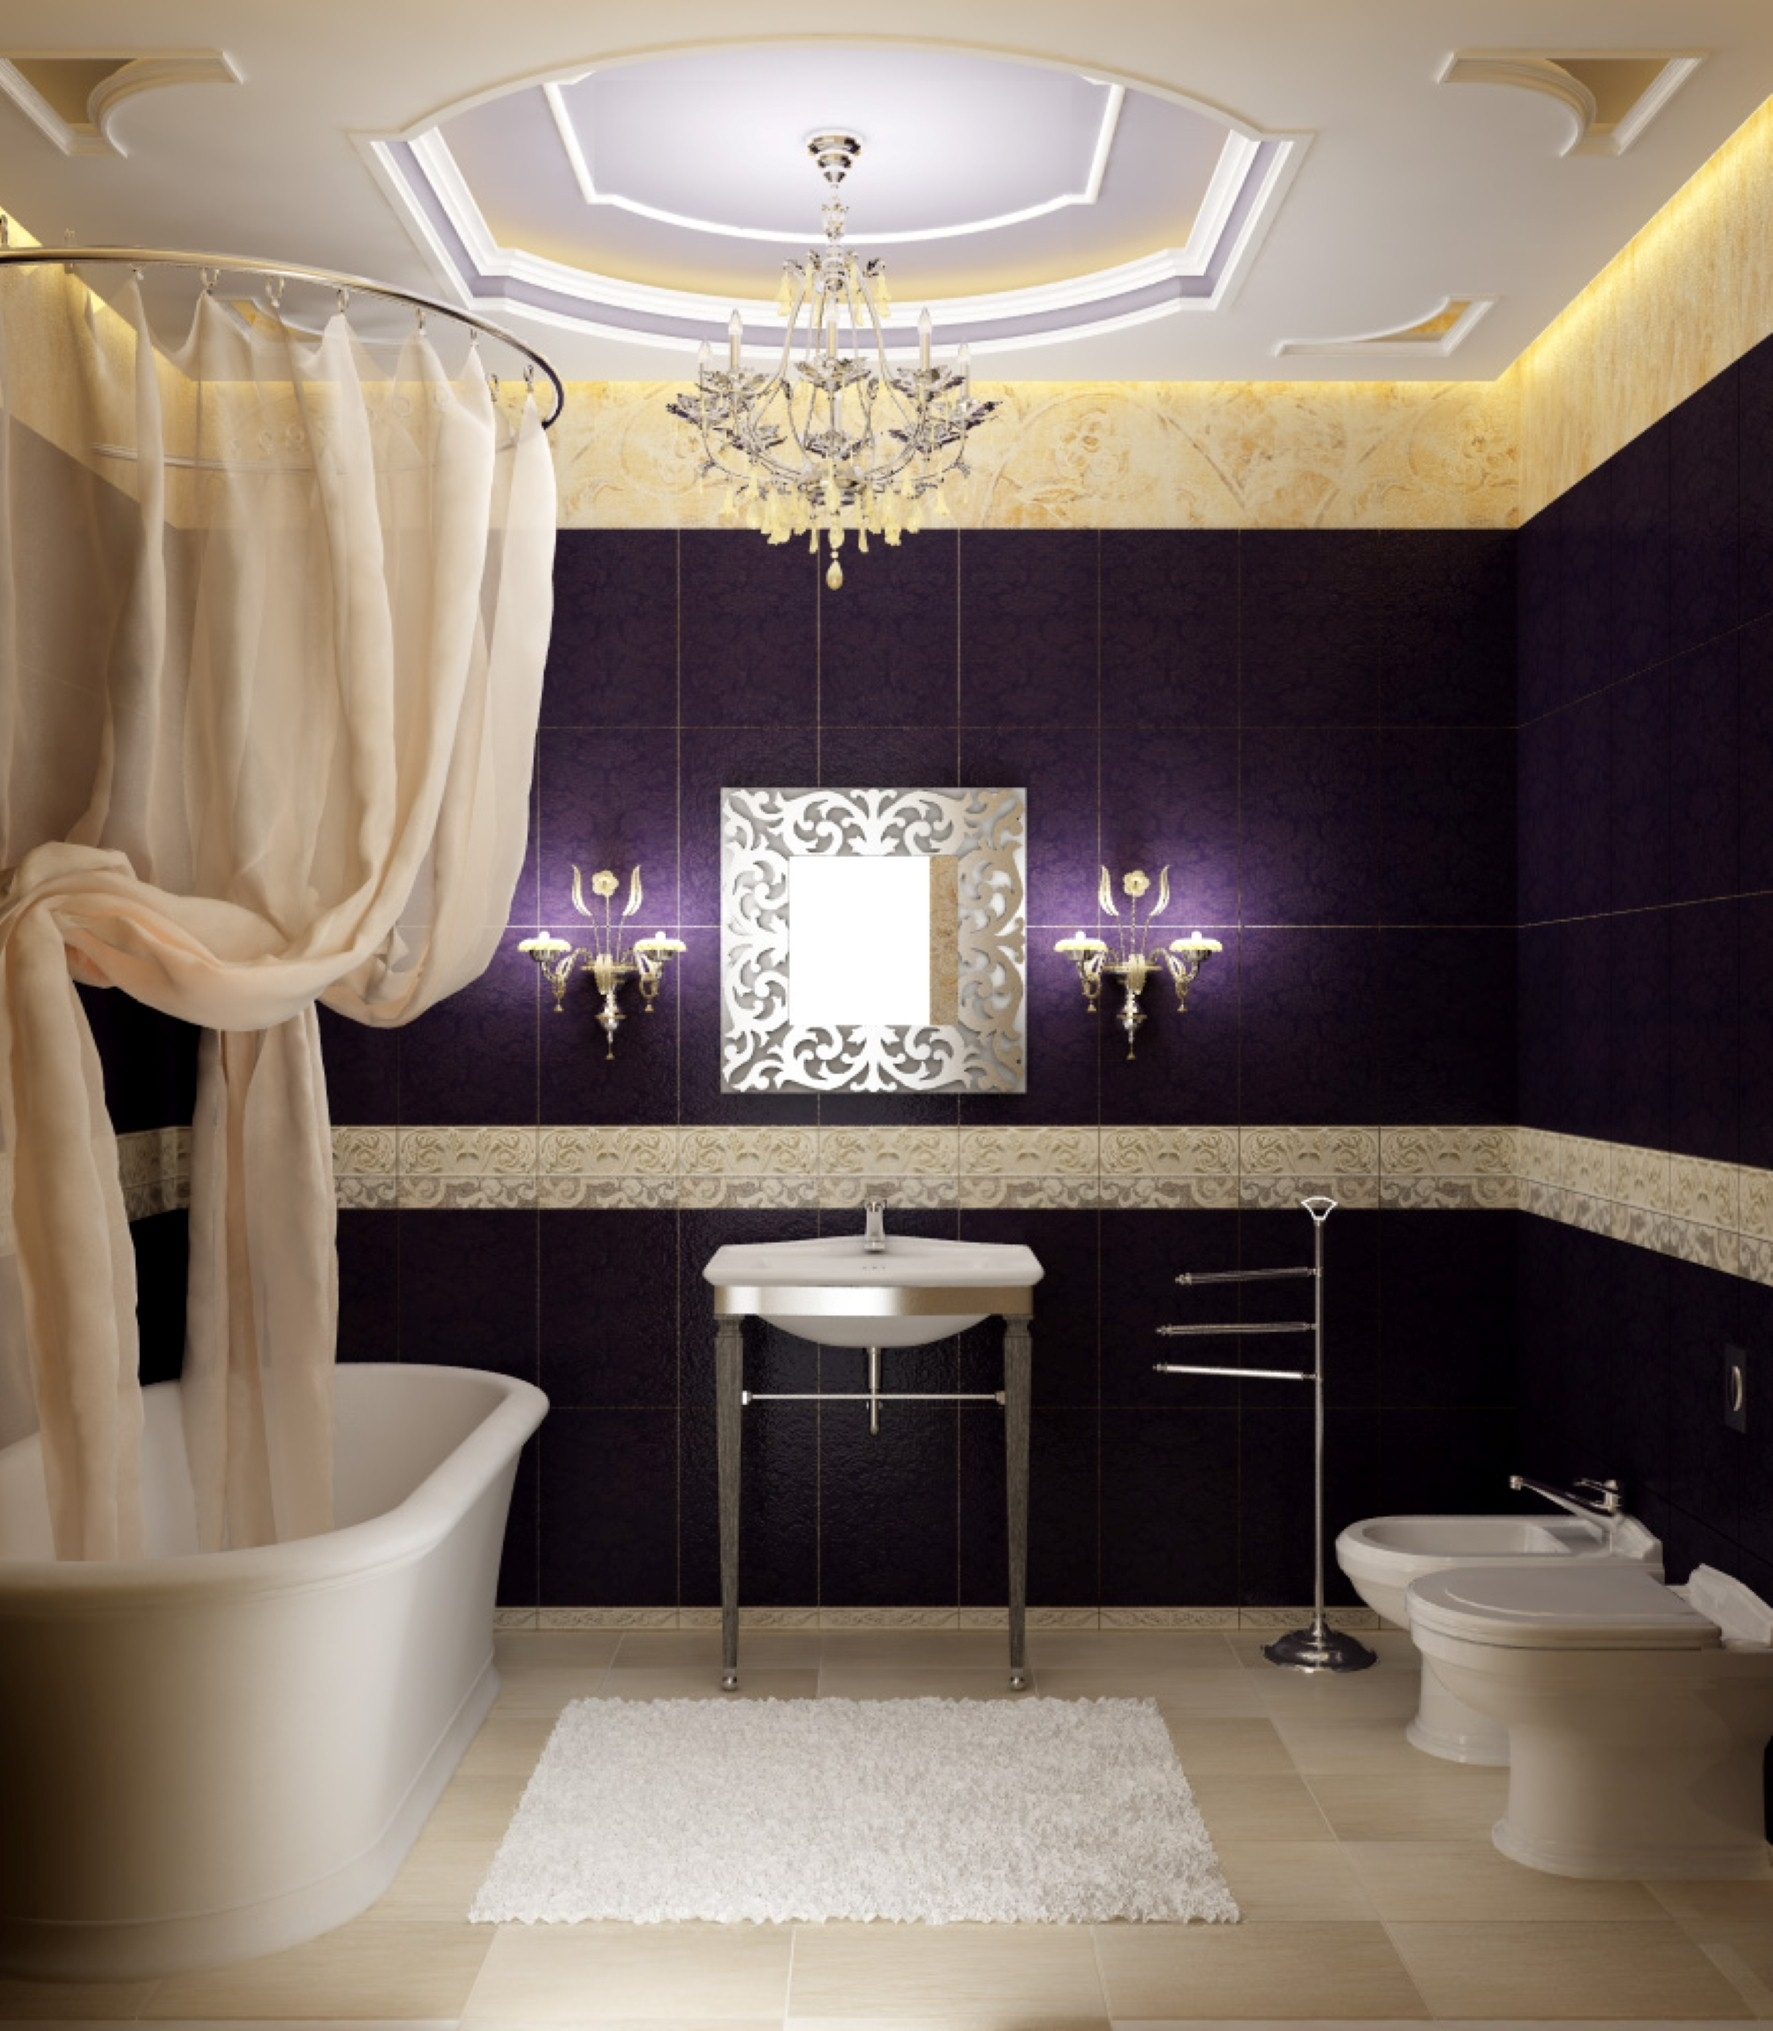 Spacious Photos As Bathroom Design For Divine Design Ideas Of Great Creation With Innovative Bathroom (View 7 of 29)